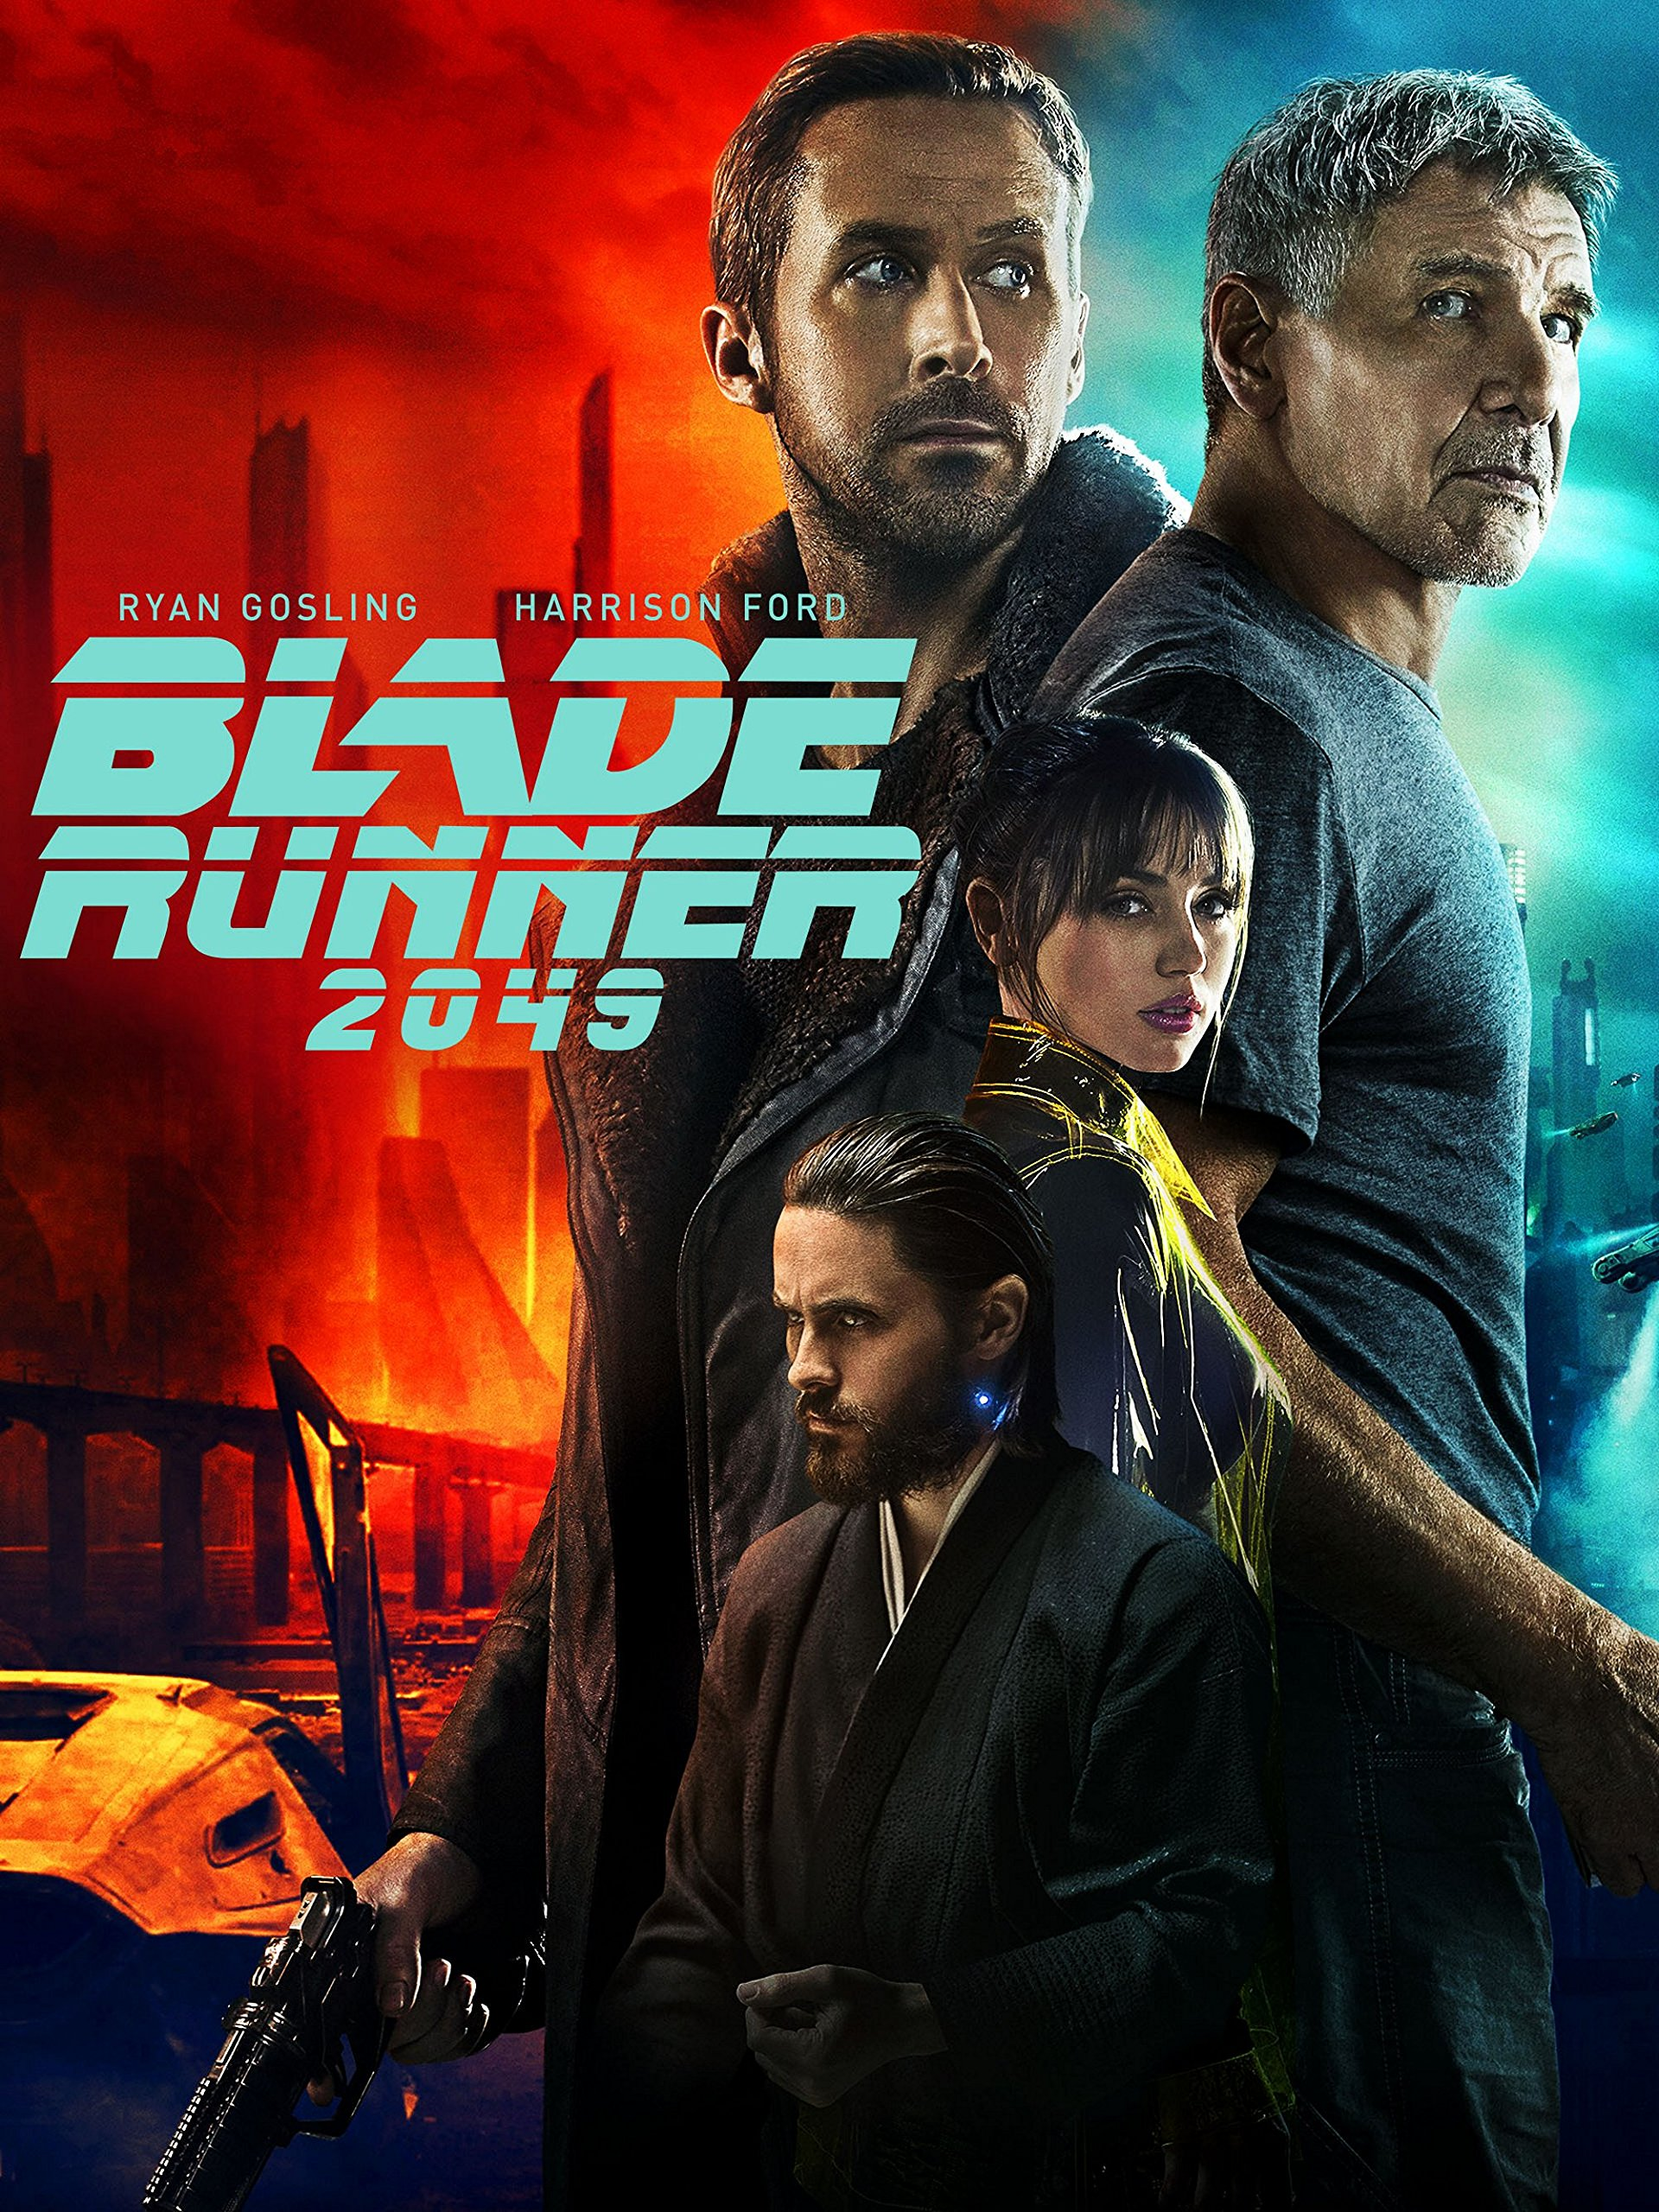 Amazon.com: Blade Runner 2049: Ryan Gosling, Harrison Ford, Ana de Armas,  Sylvia Hoeks: Amazon Digital Services LLC